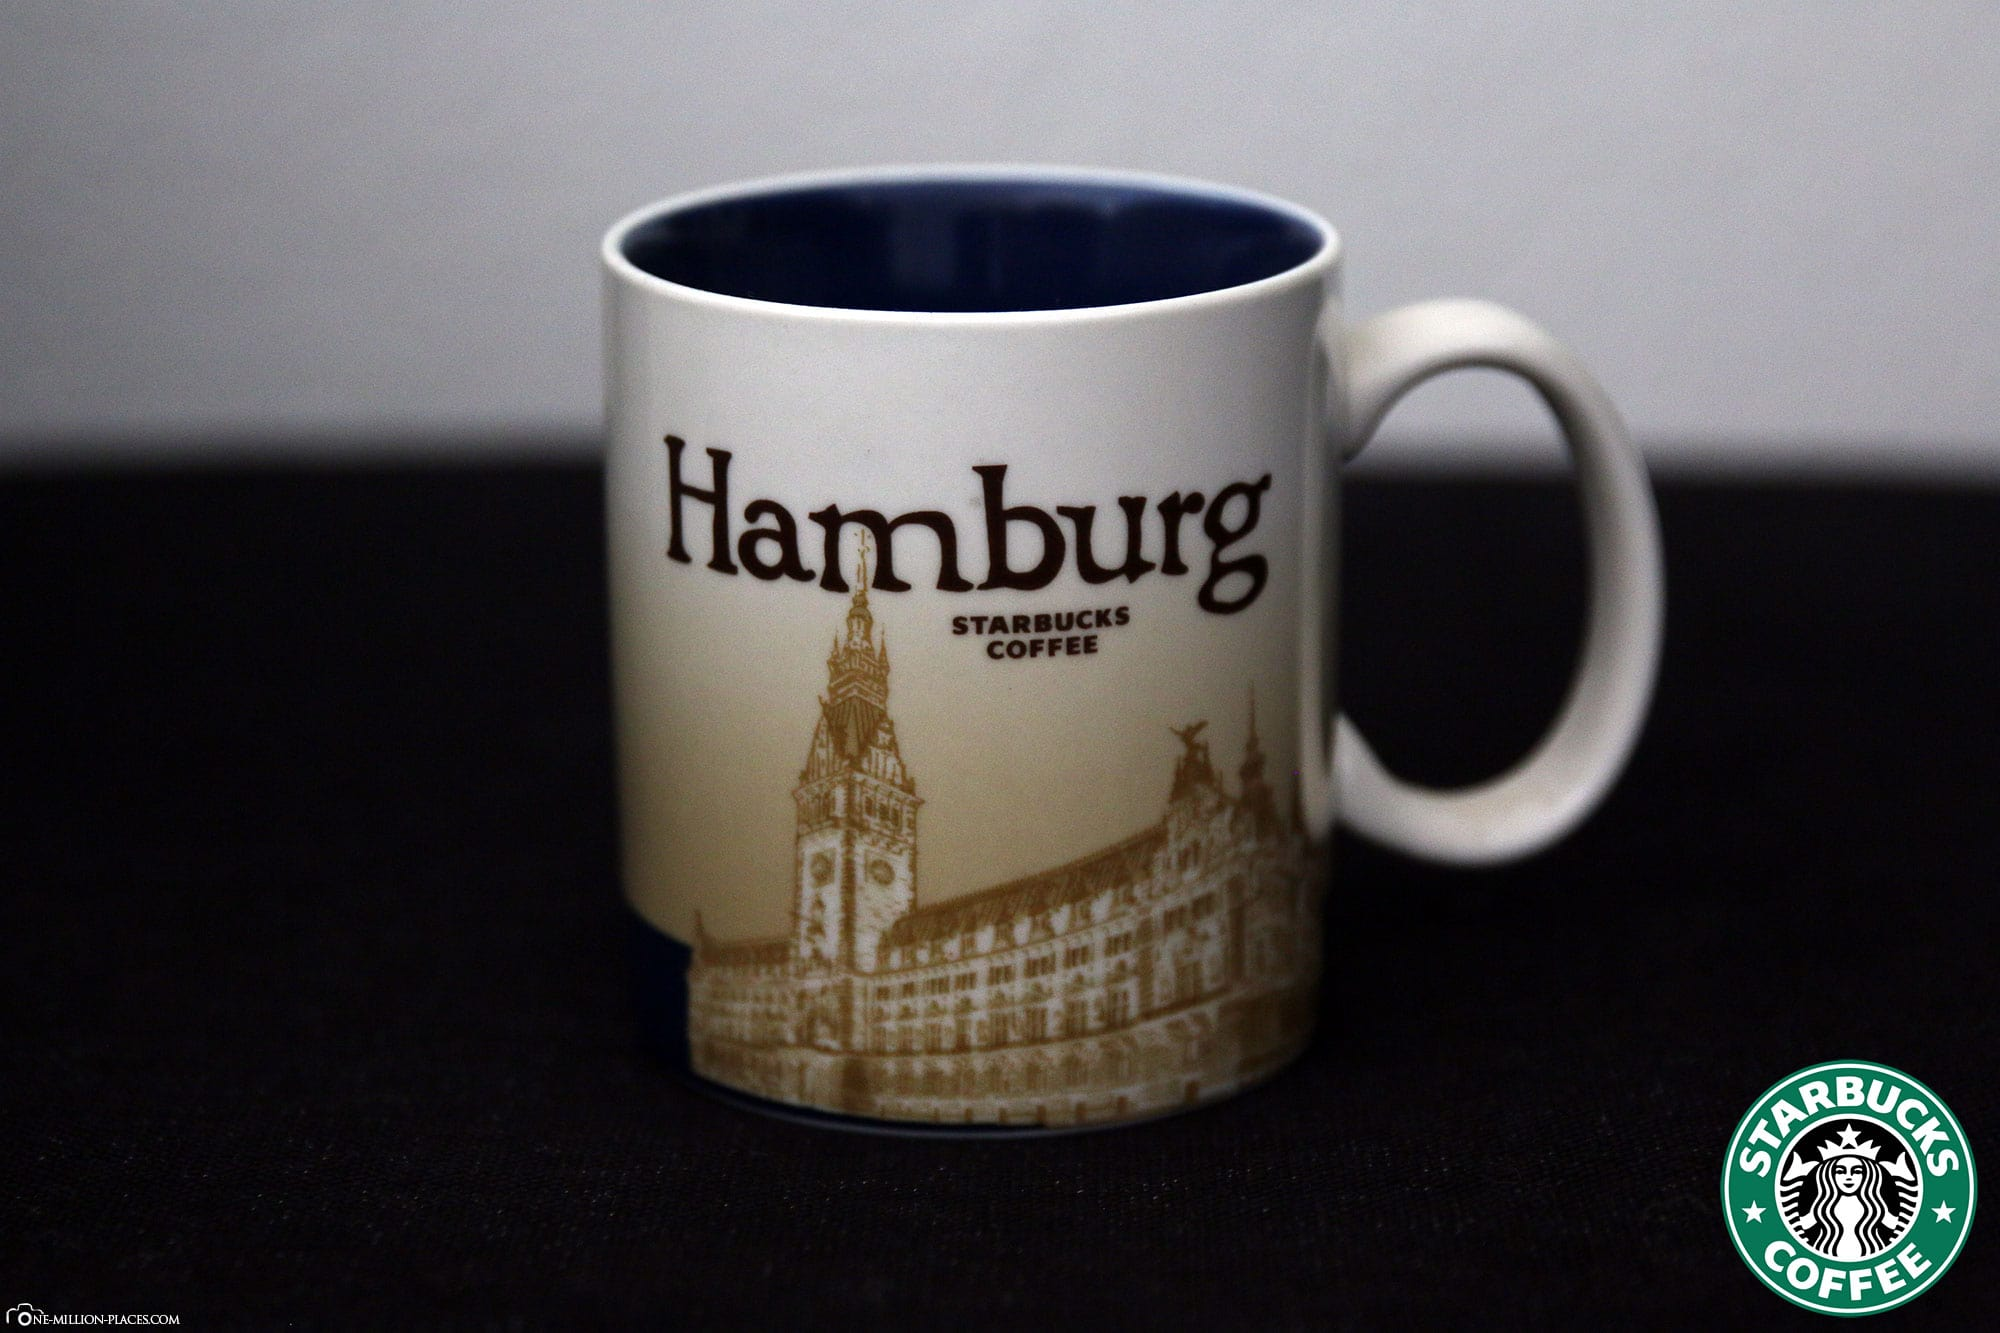 Hamburg, Starbucks Cup, Global Icon Series, City Mugs, Collection, Germany, Travelreport